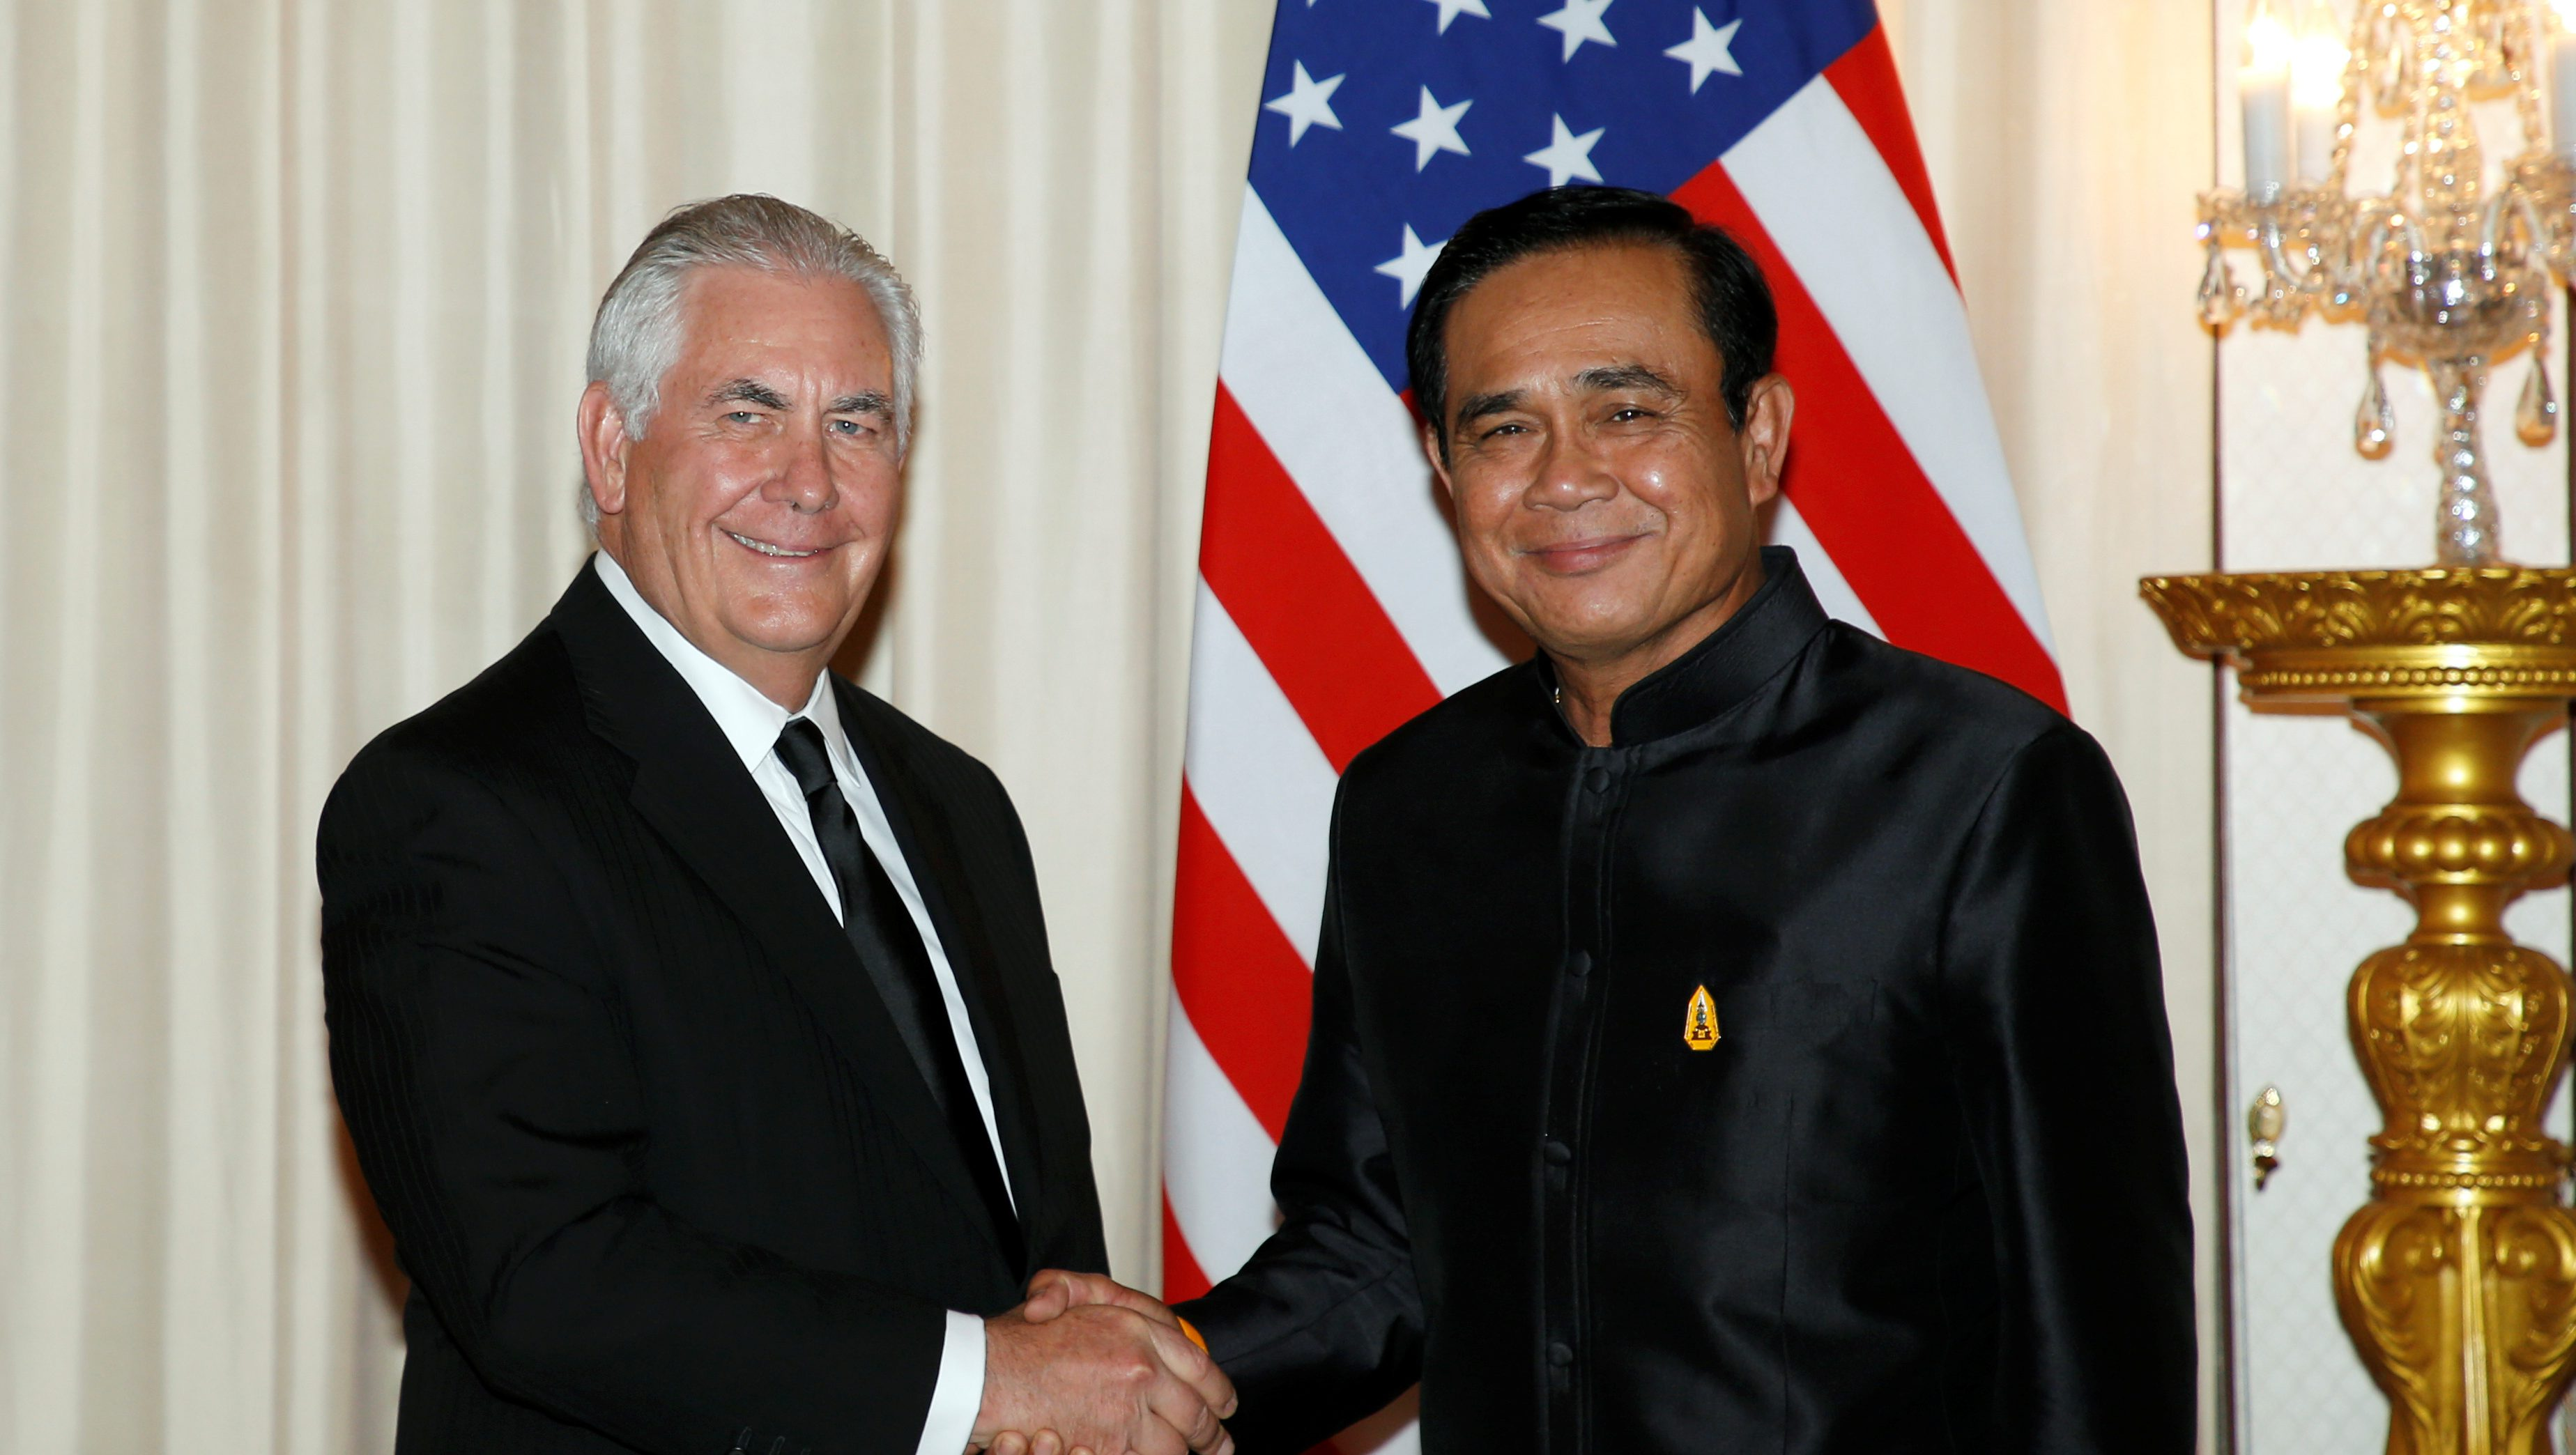 U.S. Secretary of State Rex Tillerson (L) shakes hands with Thai Prime Minister Prayut Chan-o-cha (R) during a meeting at Government House in Bangkok, Thailand August 8, 2017.  - RC1F42E94ED0